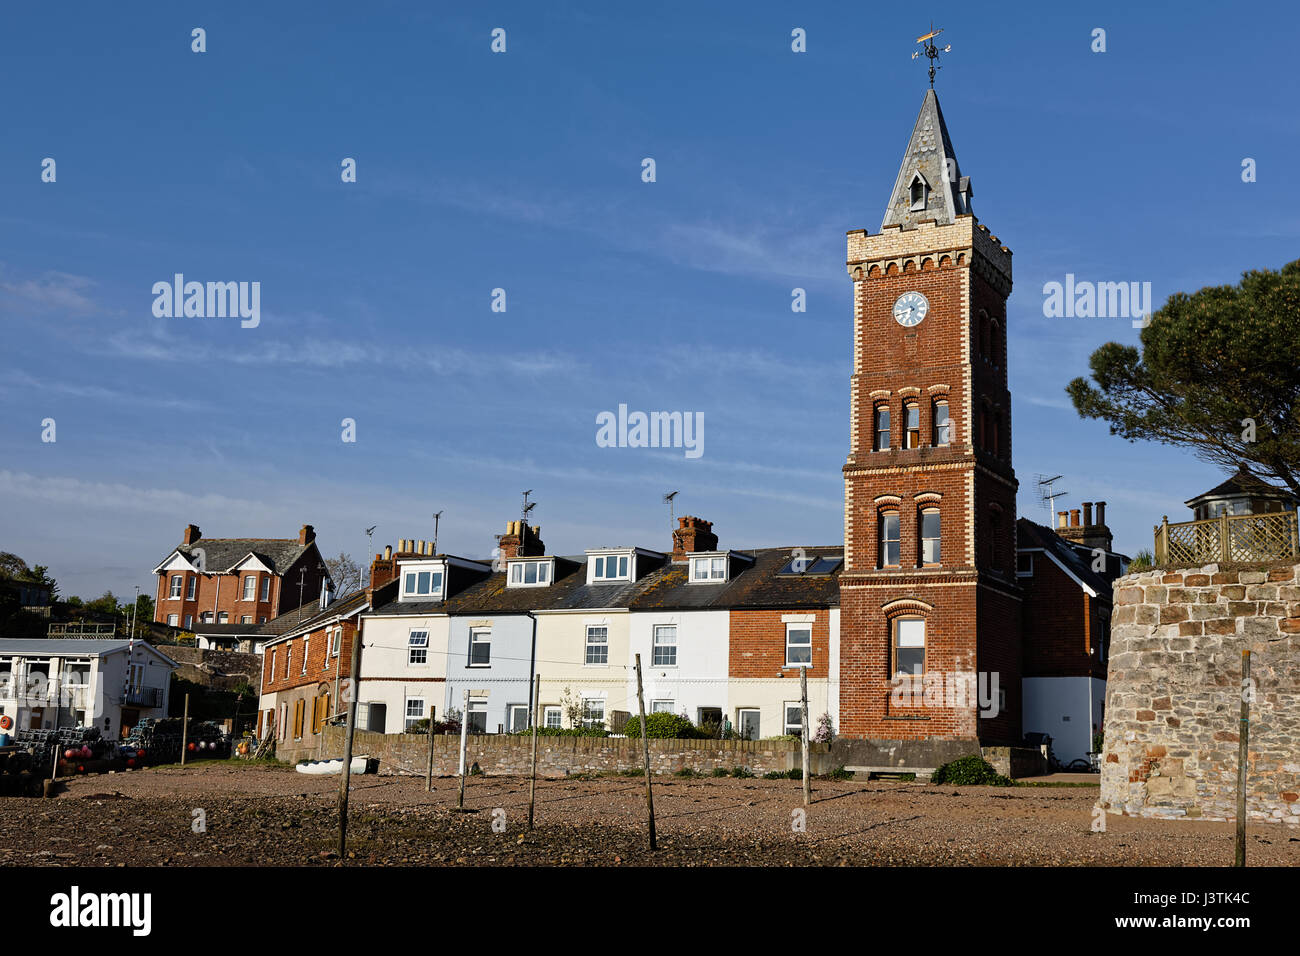 Peter's Tower Devon - Italianate brick clock tower at Lympstone on the River Exe estuary - Stock Image